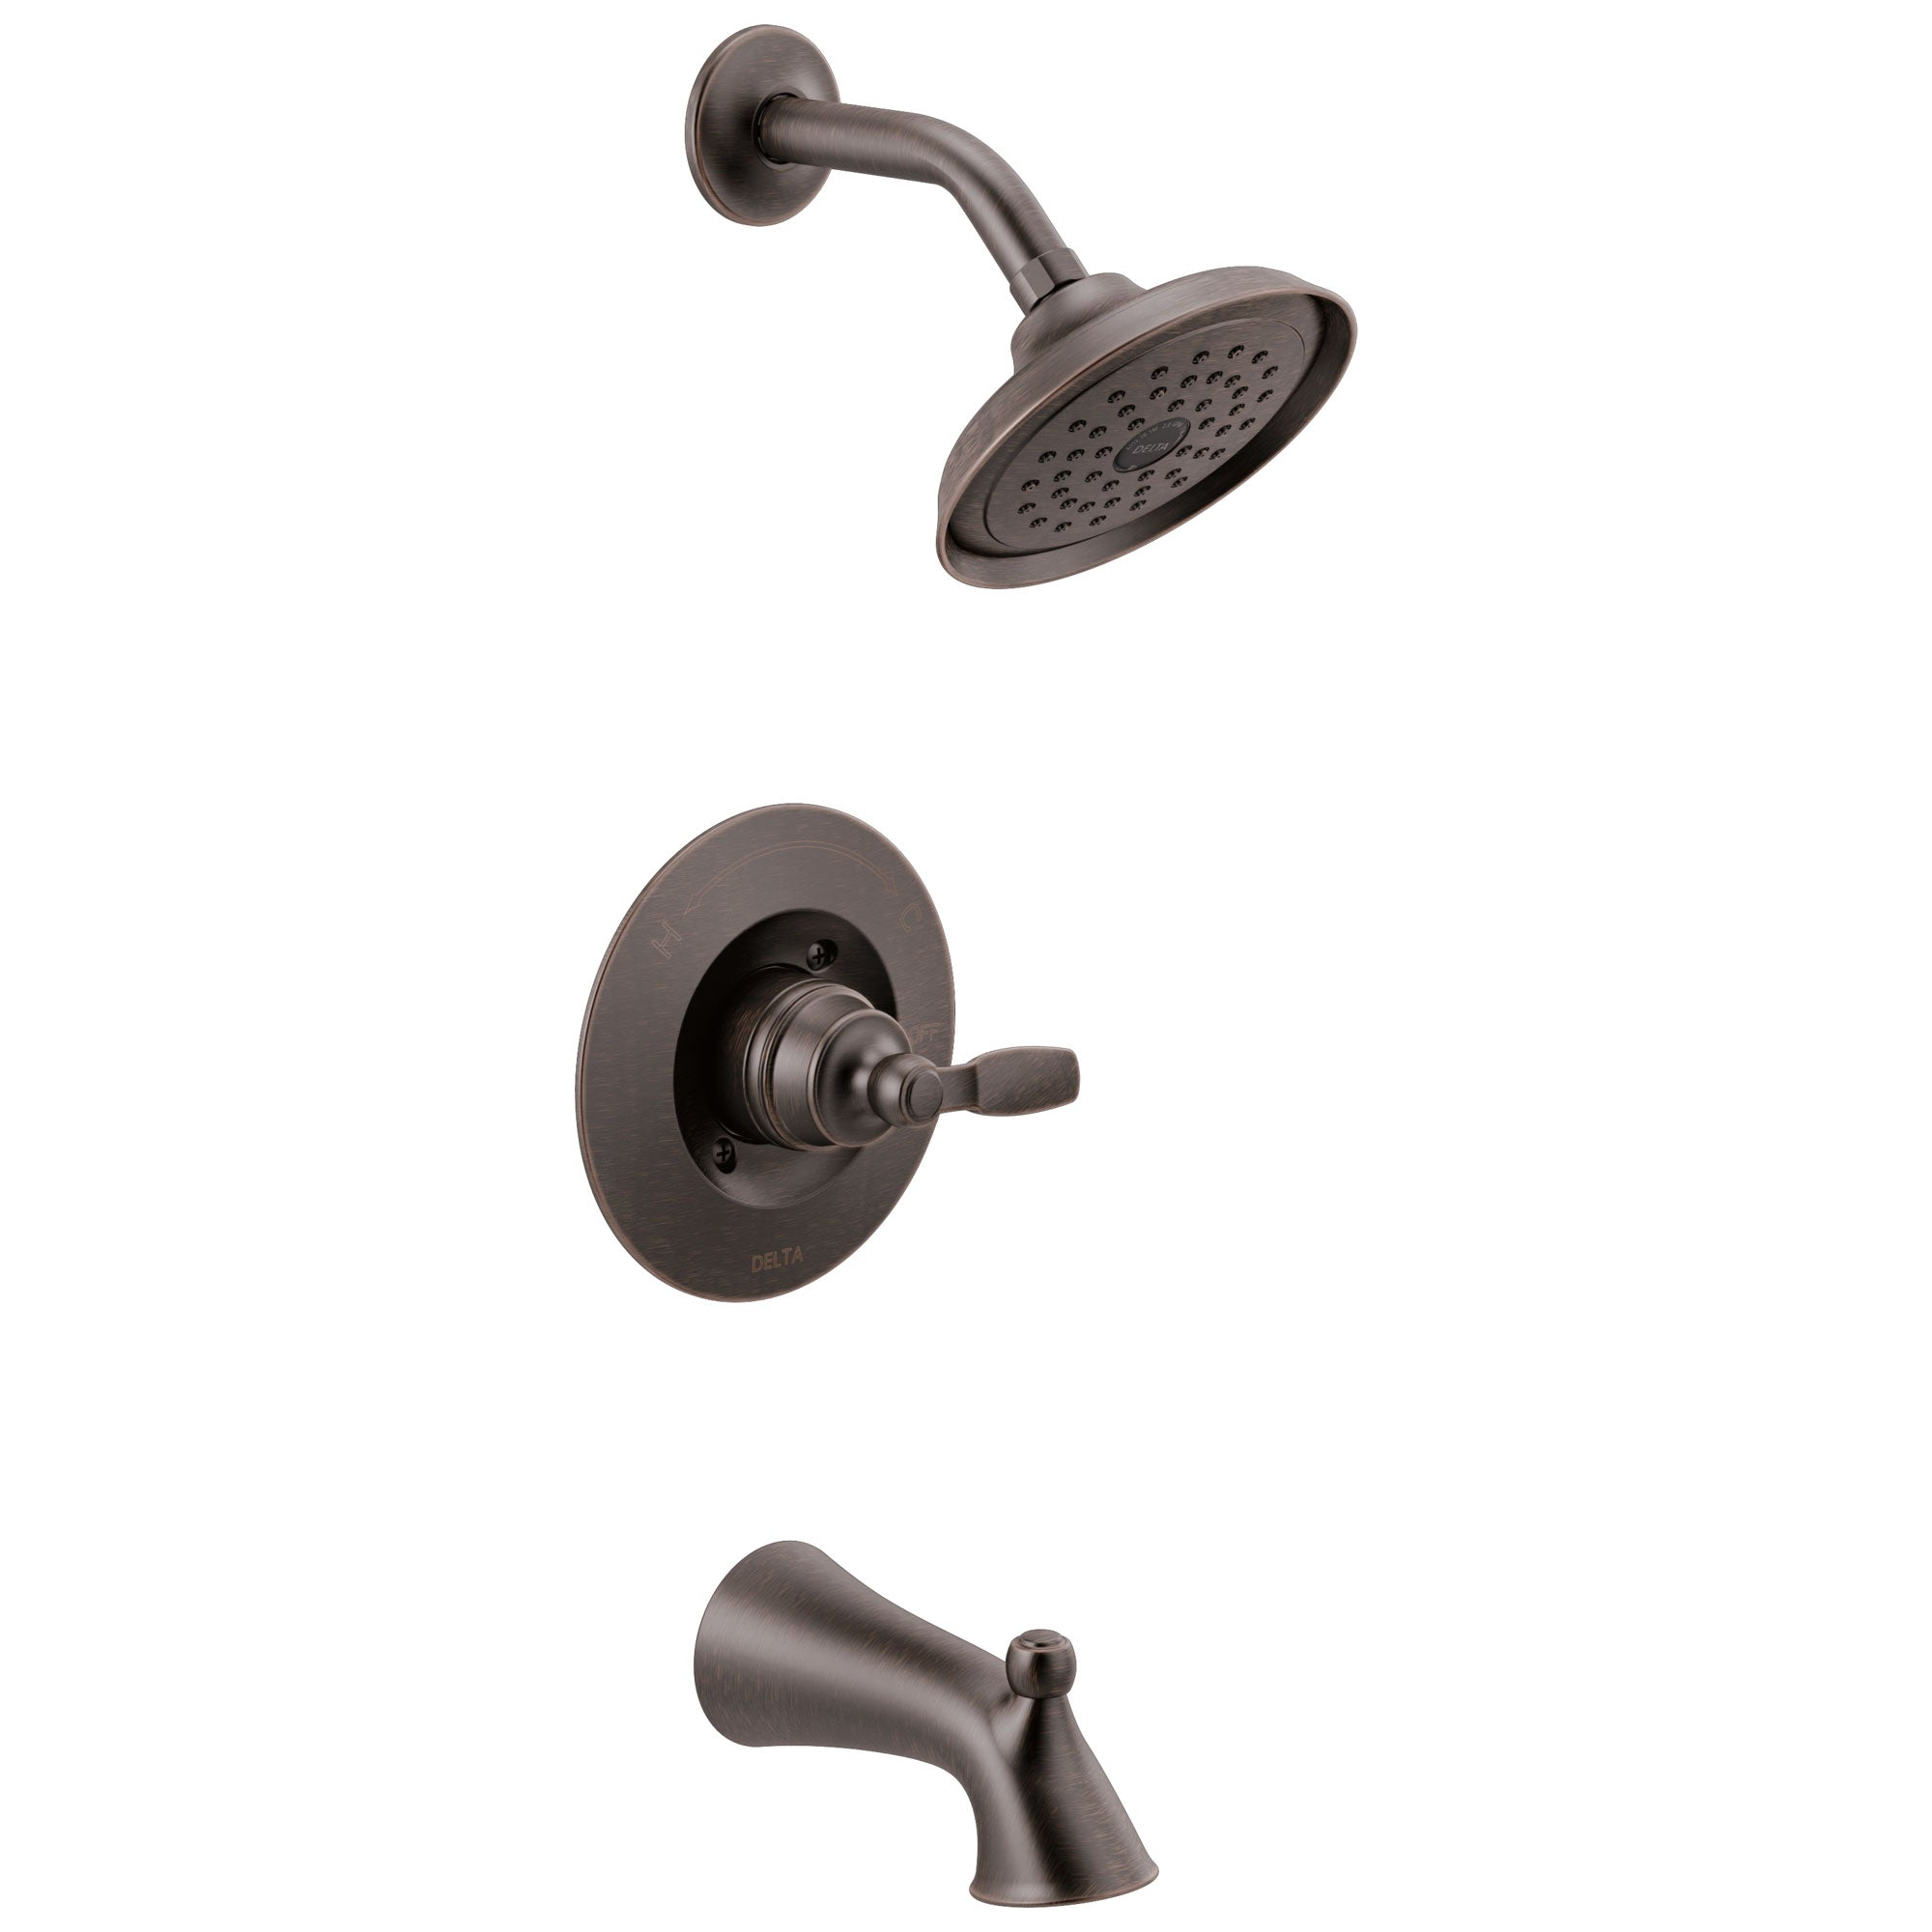 Delta Woodhurst Venetian Bronze Finish Single Lever Handle Tub/Shower Combination Faucet Includes Cartridge, and Valve with Stops D3468V